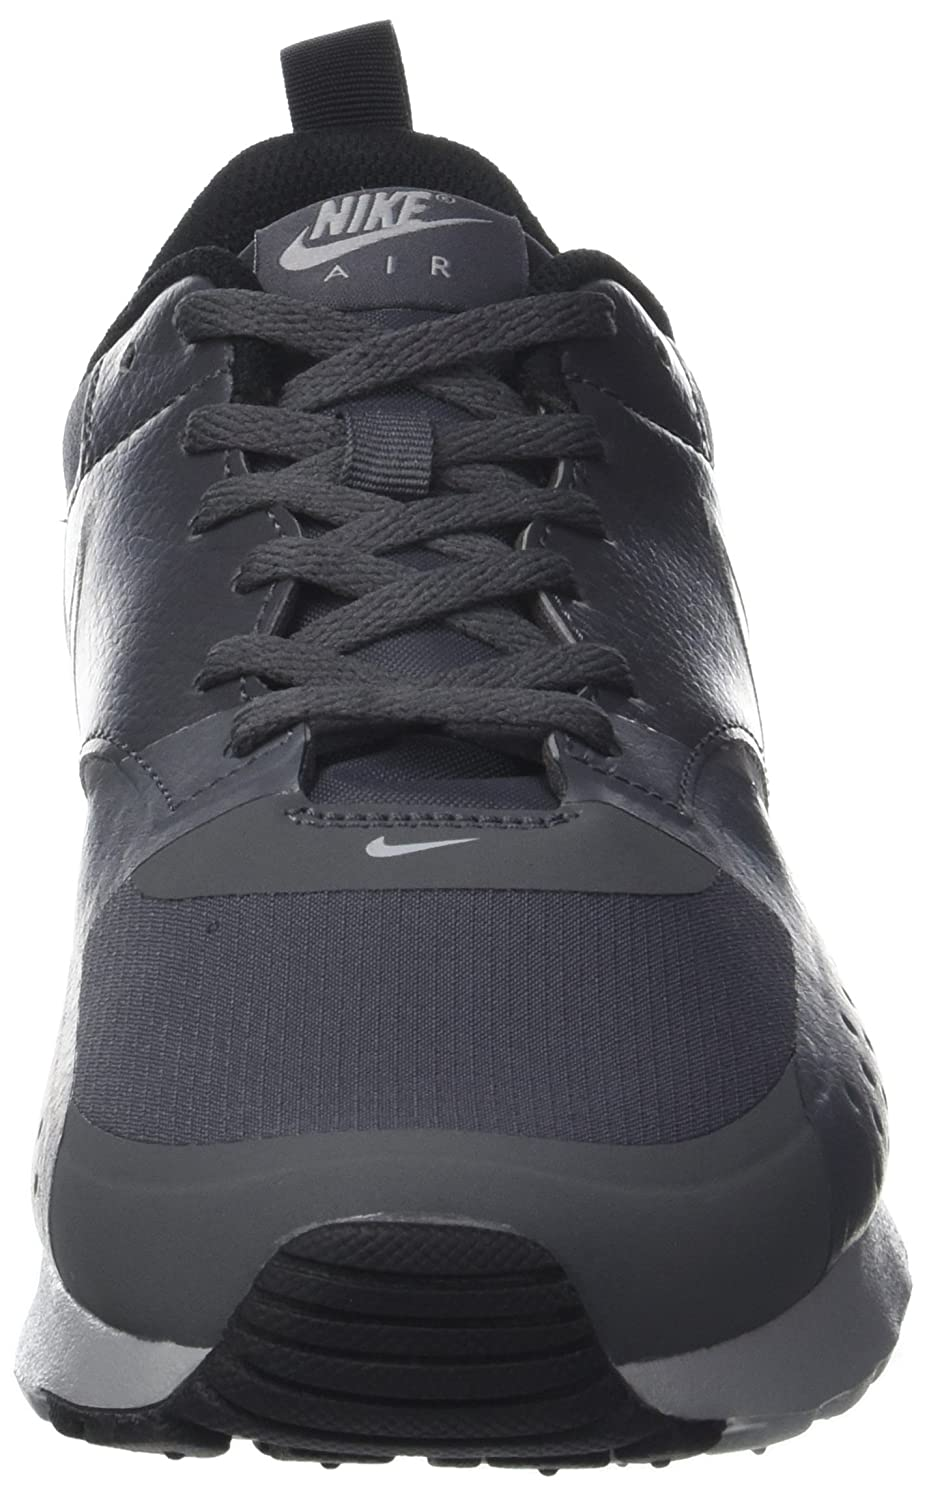 Nike Air Max Vision Se, Chaussures de Gymnastique Homme, Gris (Moon Particle/Vapste Grey/Ridgerock 201), 43 EU